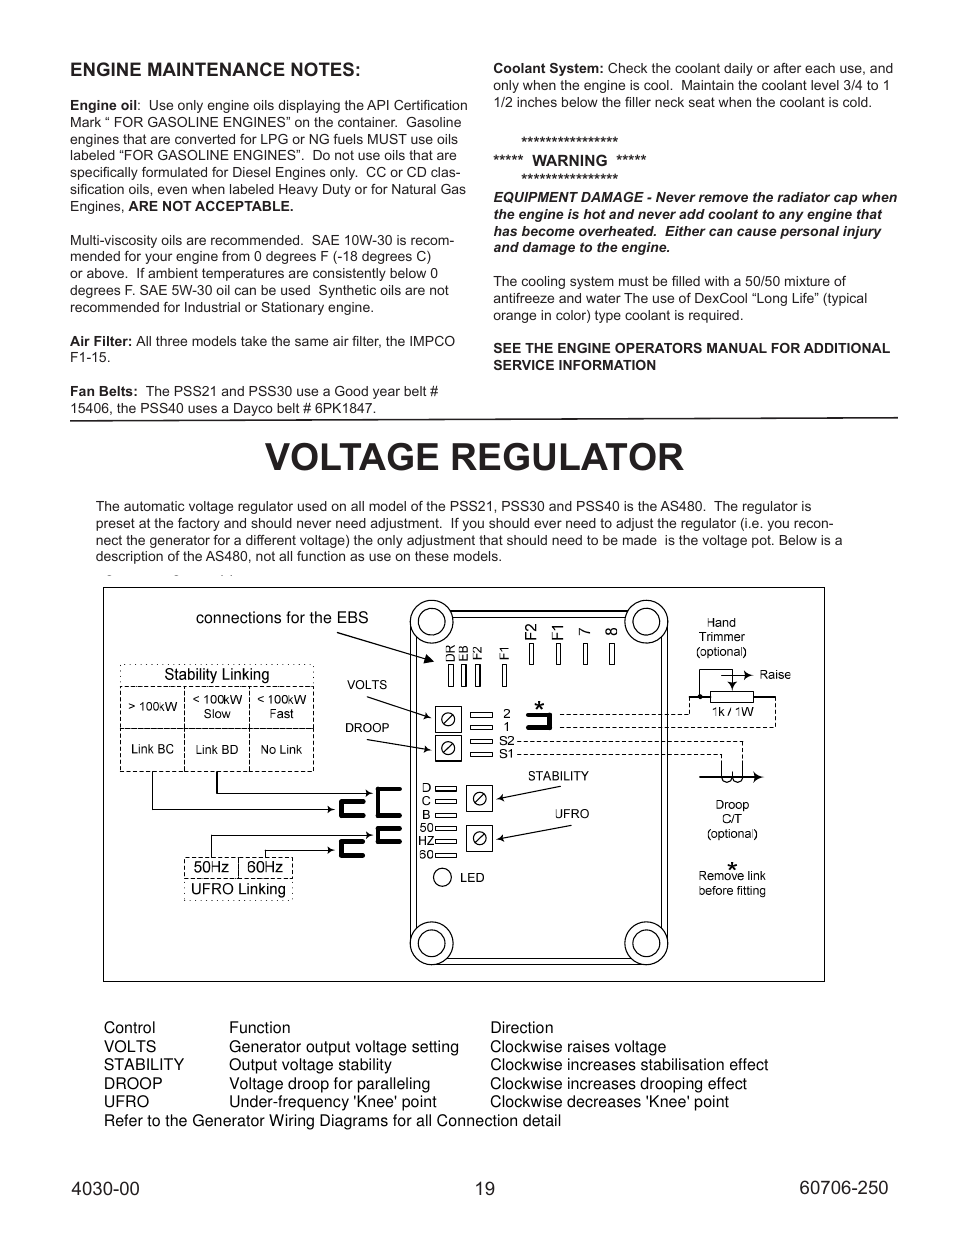 Voltage Regulator Automatic Avr Winco Ulpss40 24 Volt Generator Wiring Diagram I With Dse